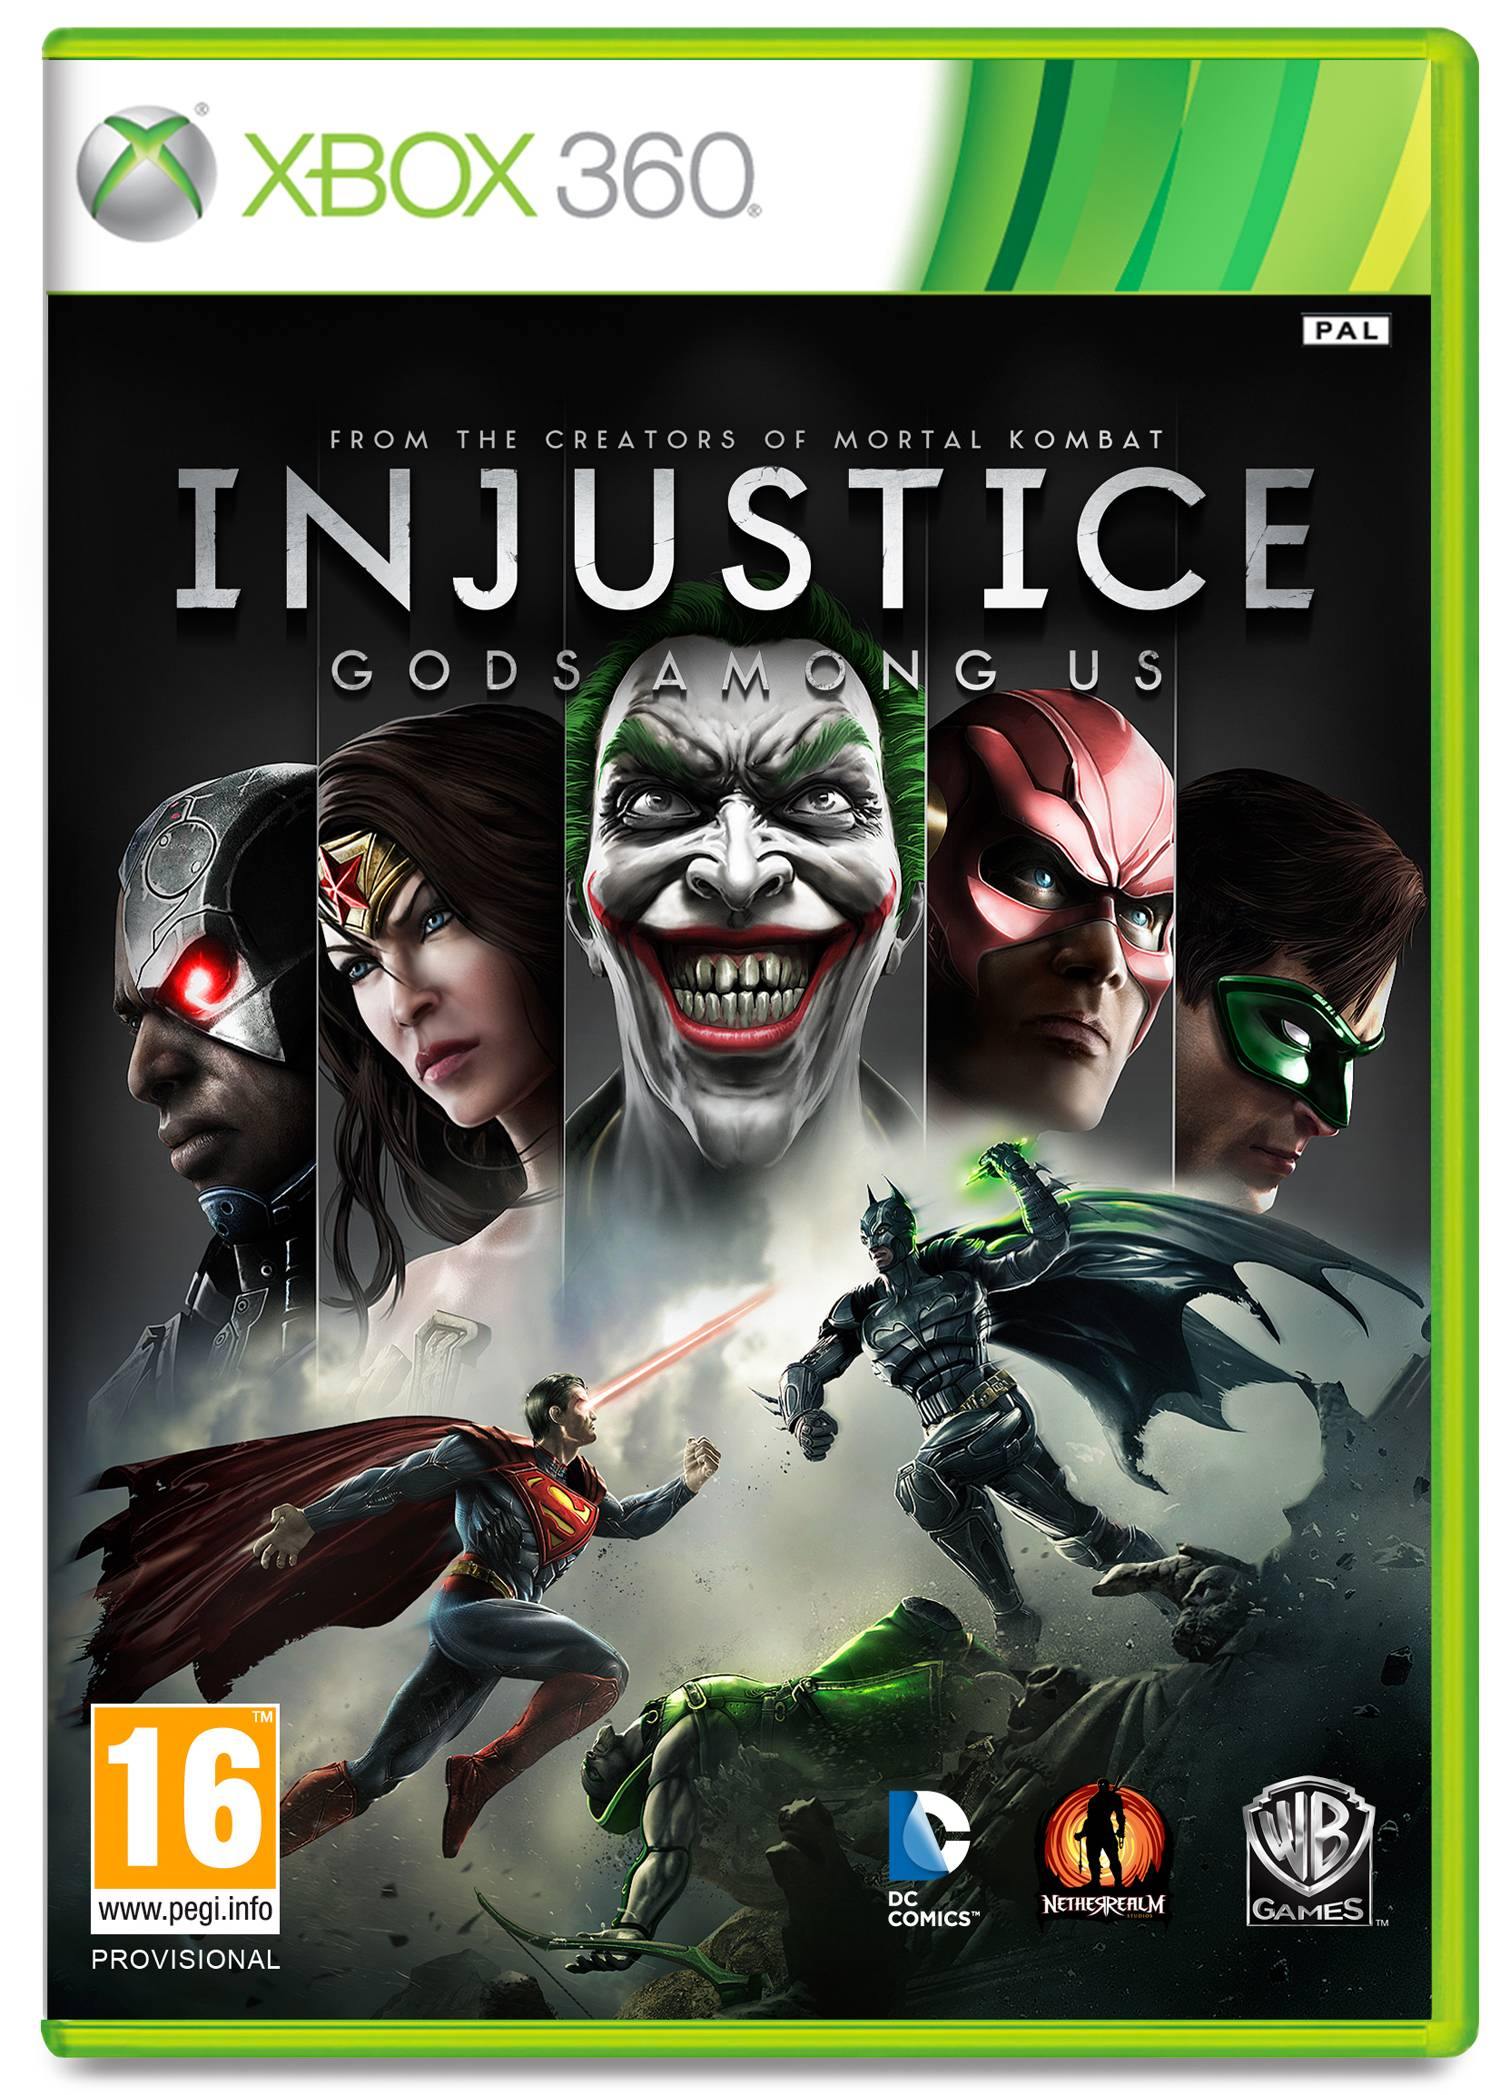 XBOX 360 - Injustice Gods Among Us